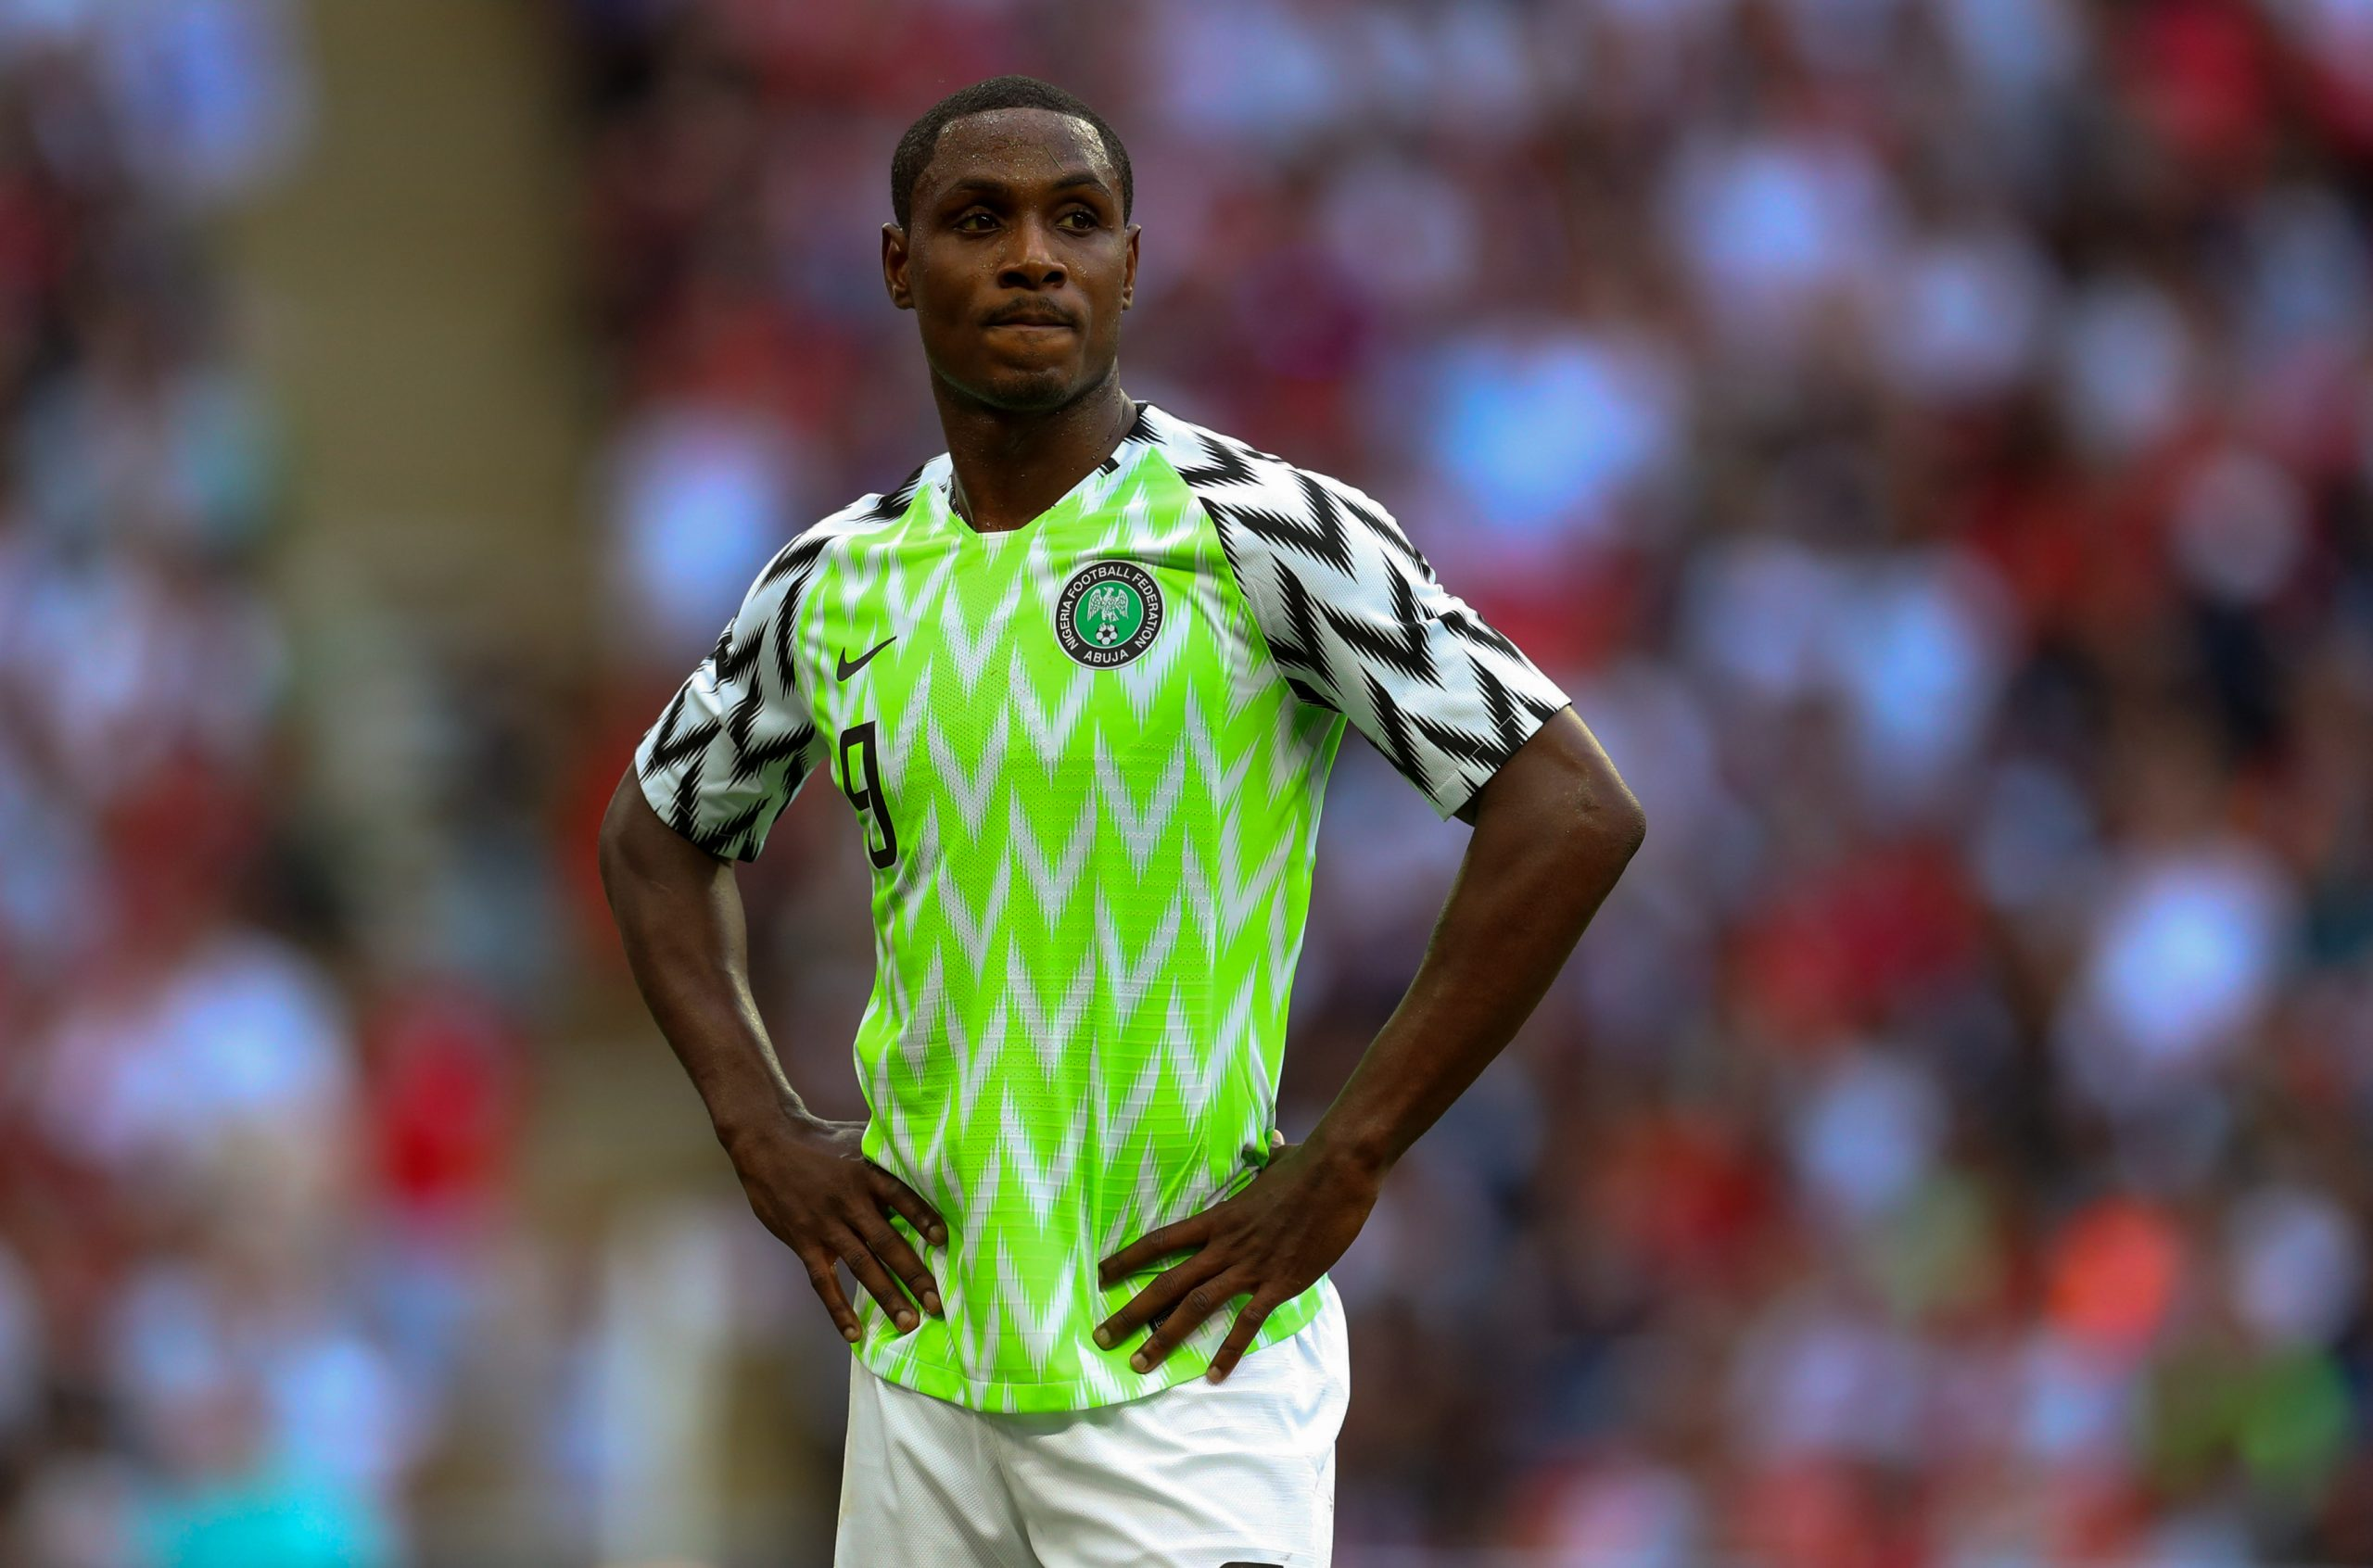 2 June 2018: Odion Ighalo of Nigeria during an international friendly match against England  at Wembley Stadium, London. (Photograph by Catherine Ivill/ Getty Images)